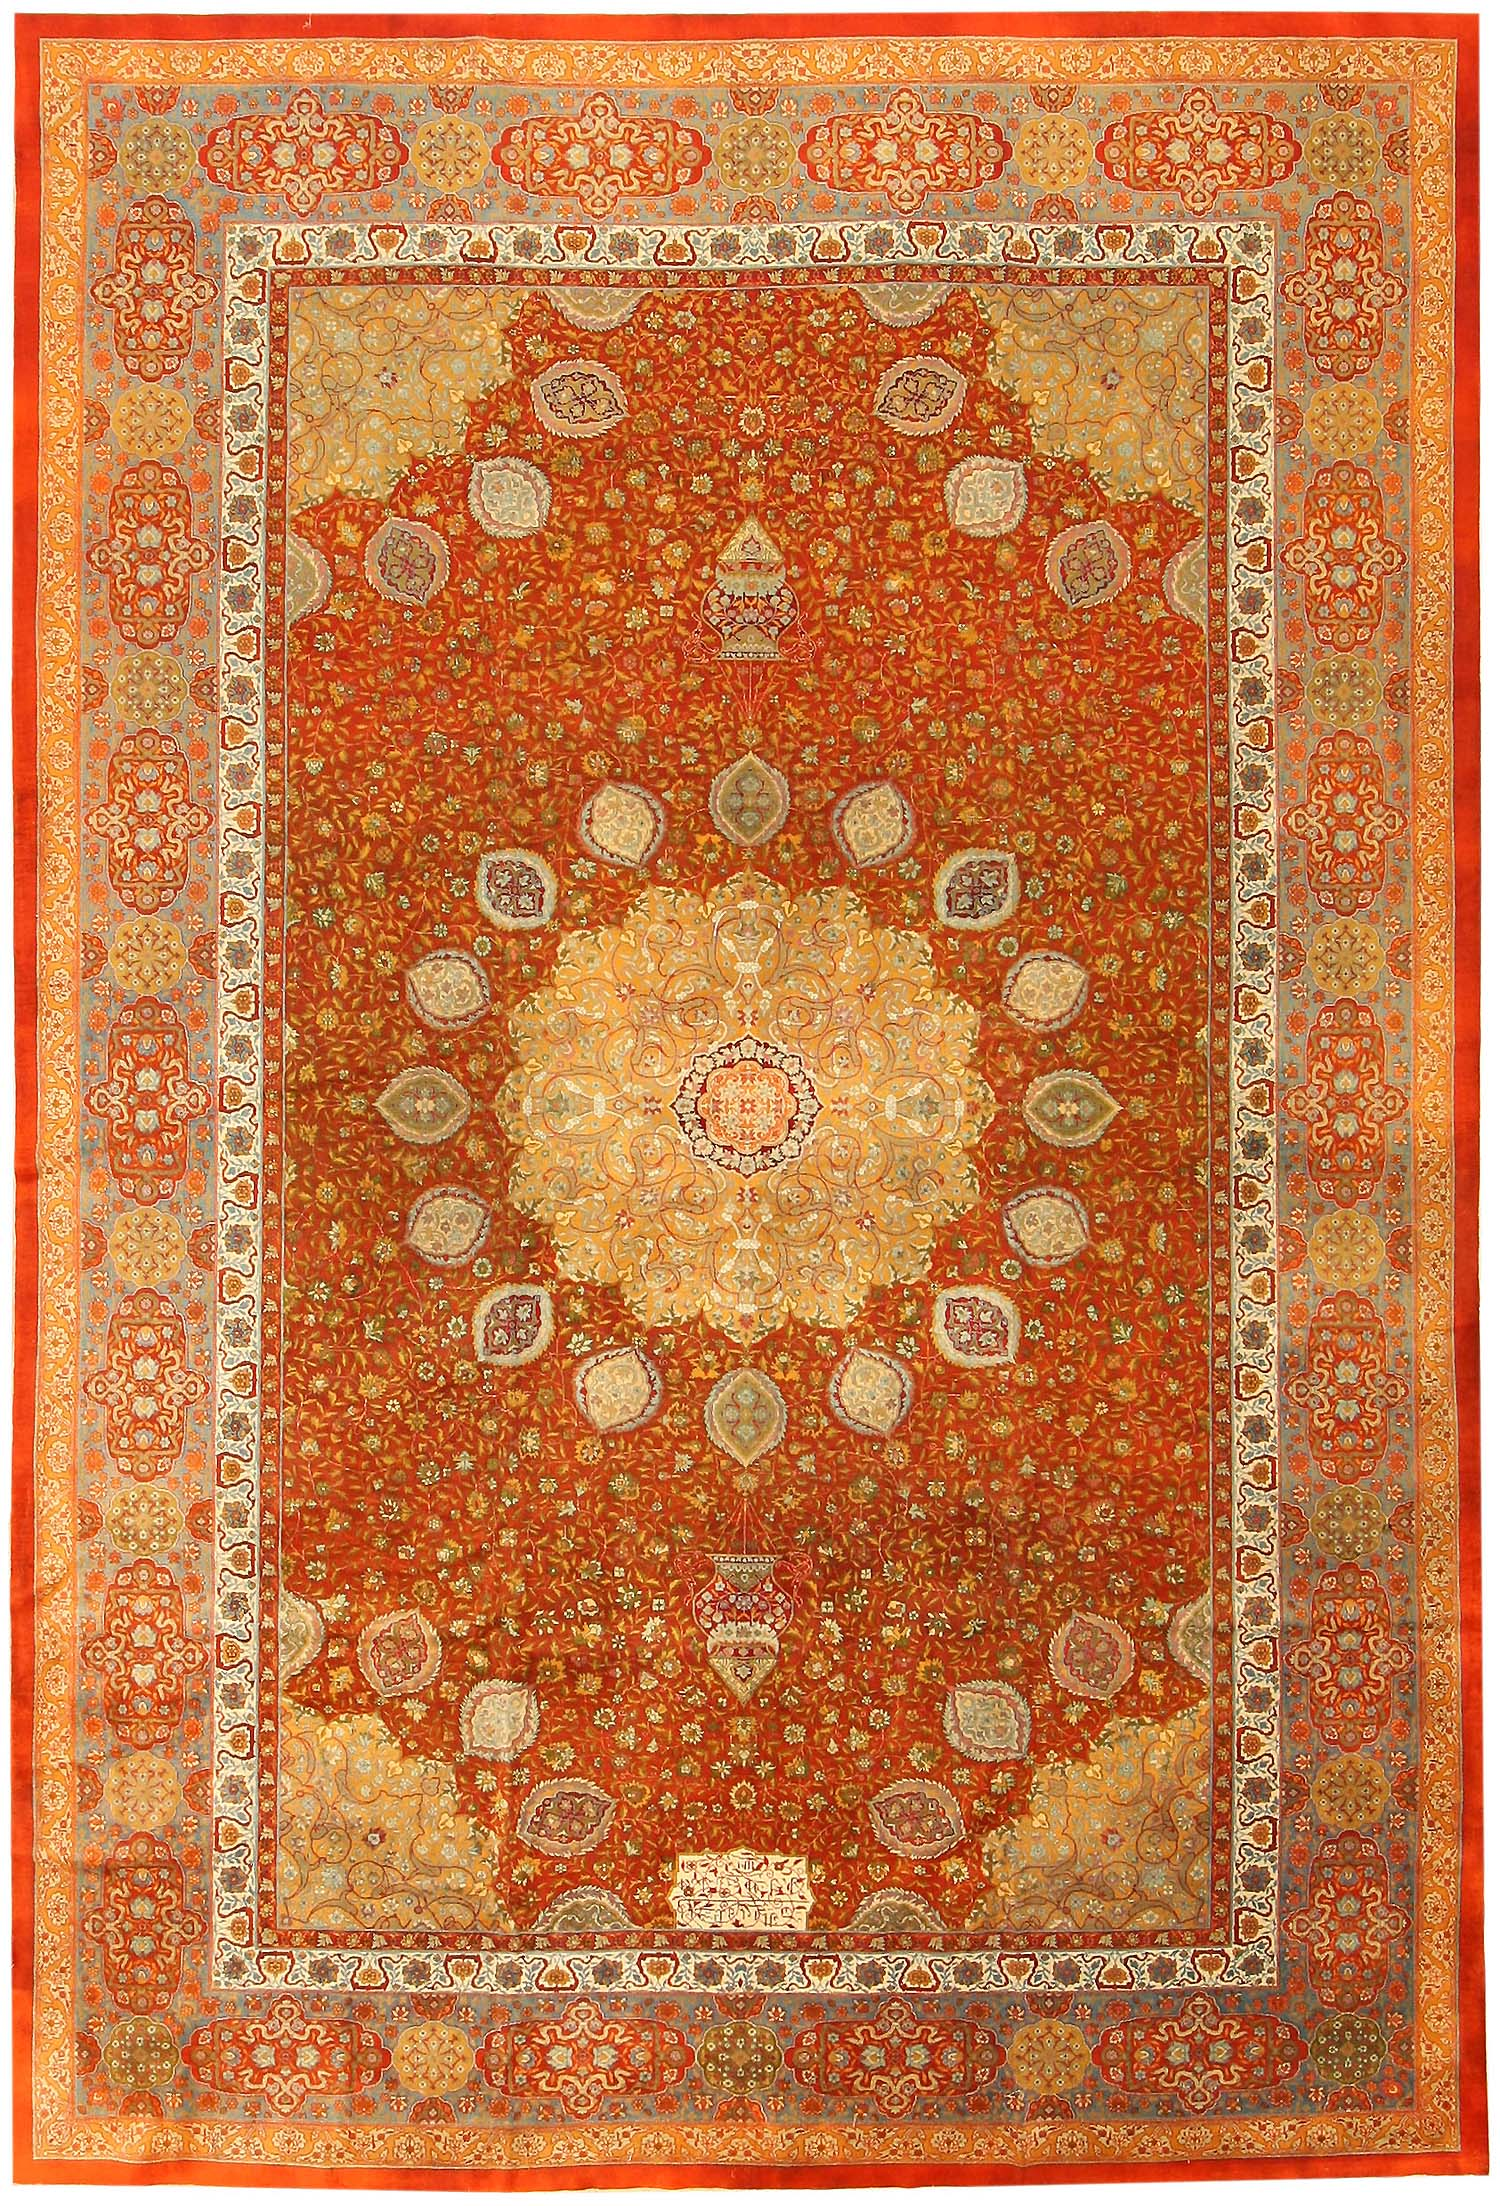 Antiquescom Classifieds Antiques Antique Rugs For